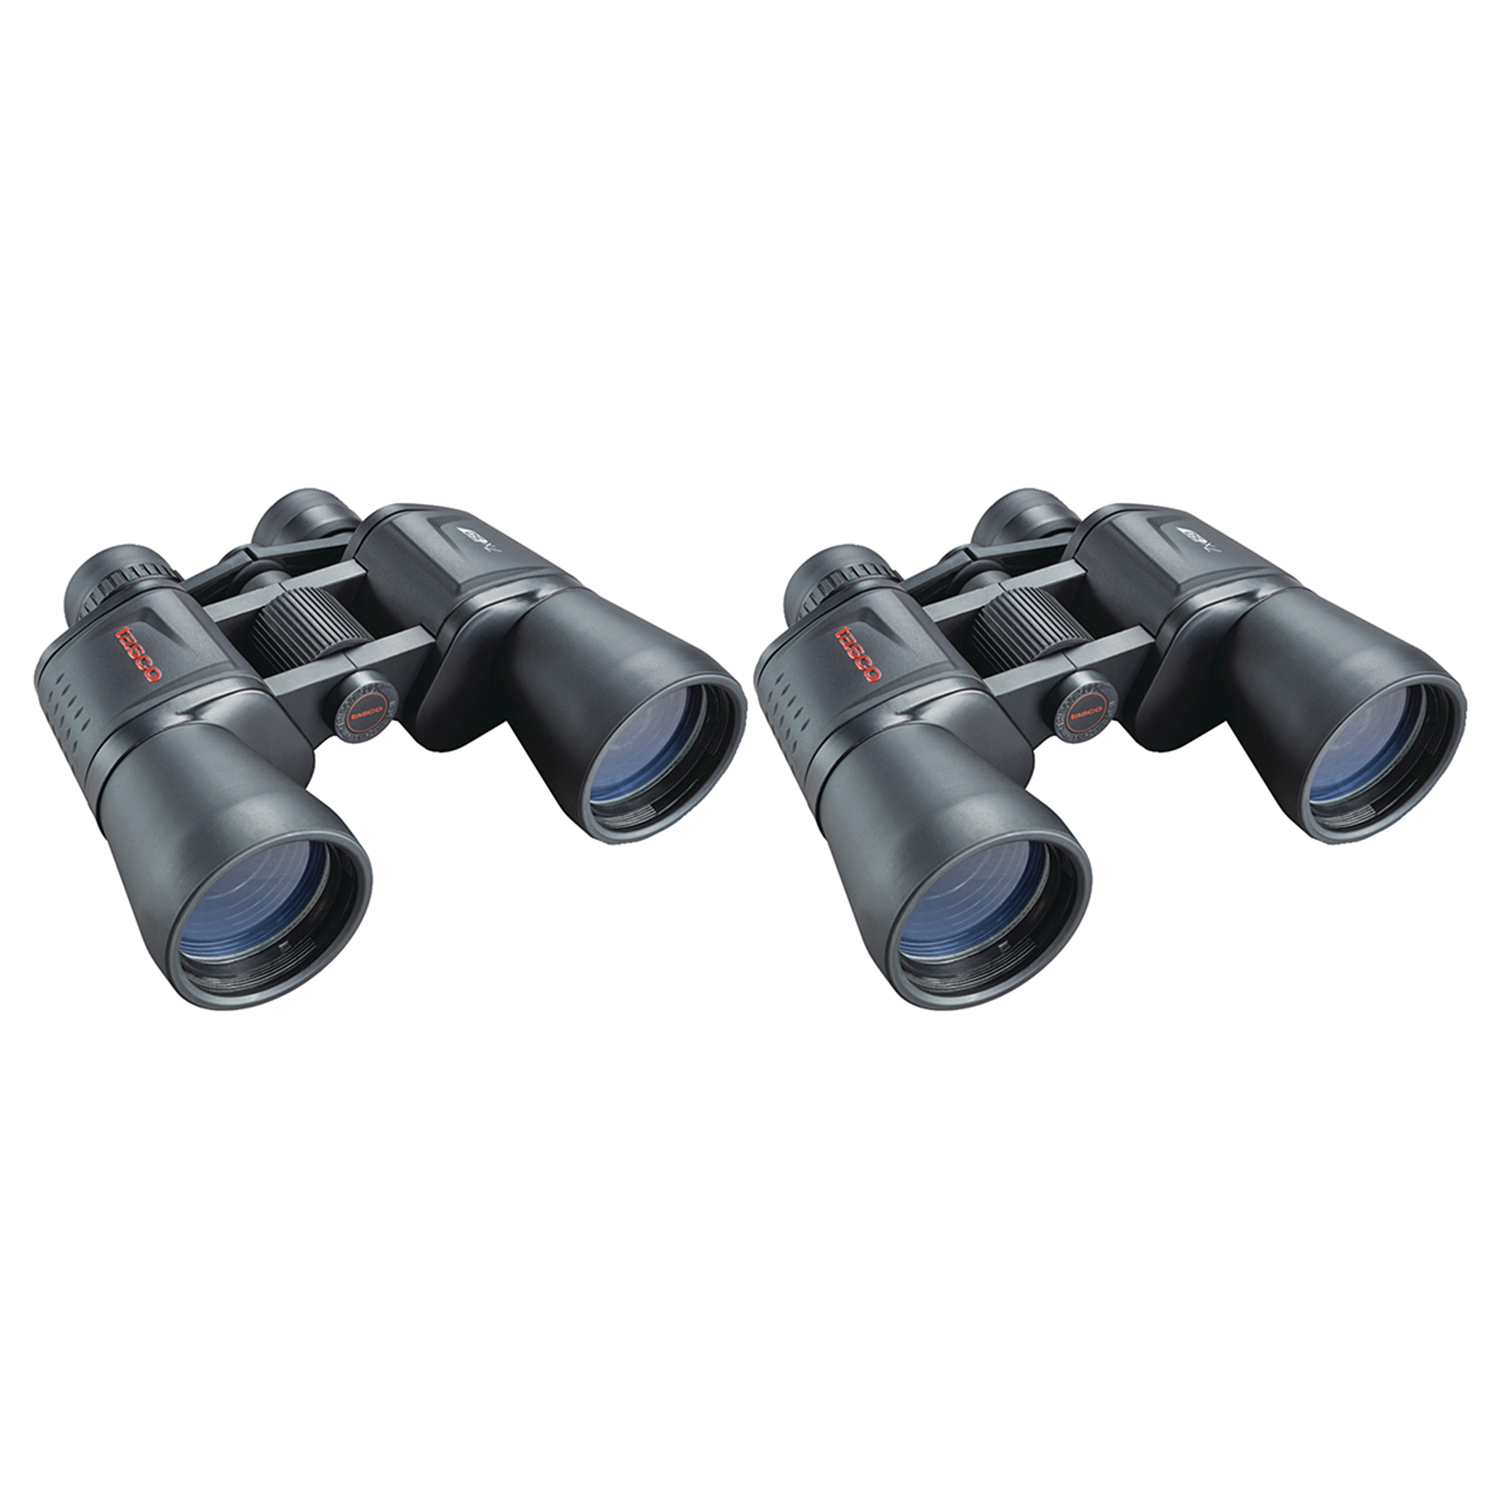 2 Pack Tasco 170125 Essentials 12 X 50mm Porro Prism Binoculars by Tasco